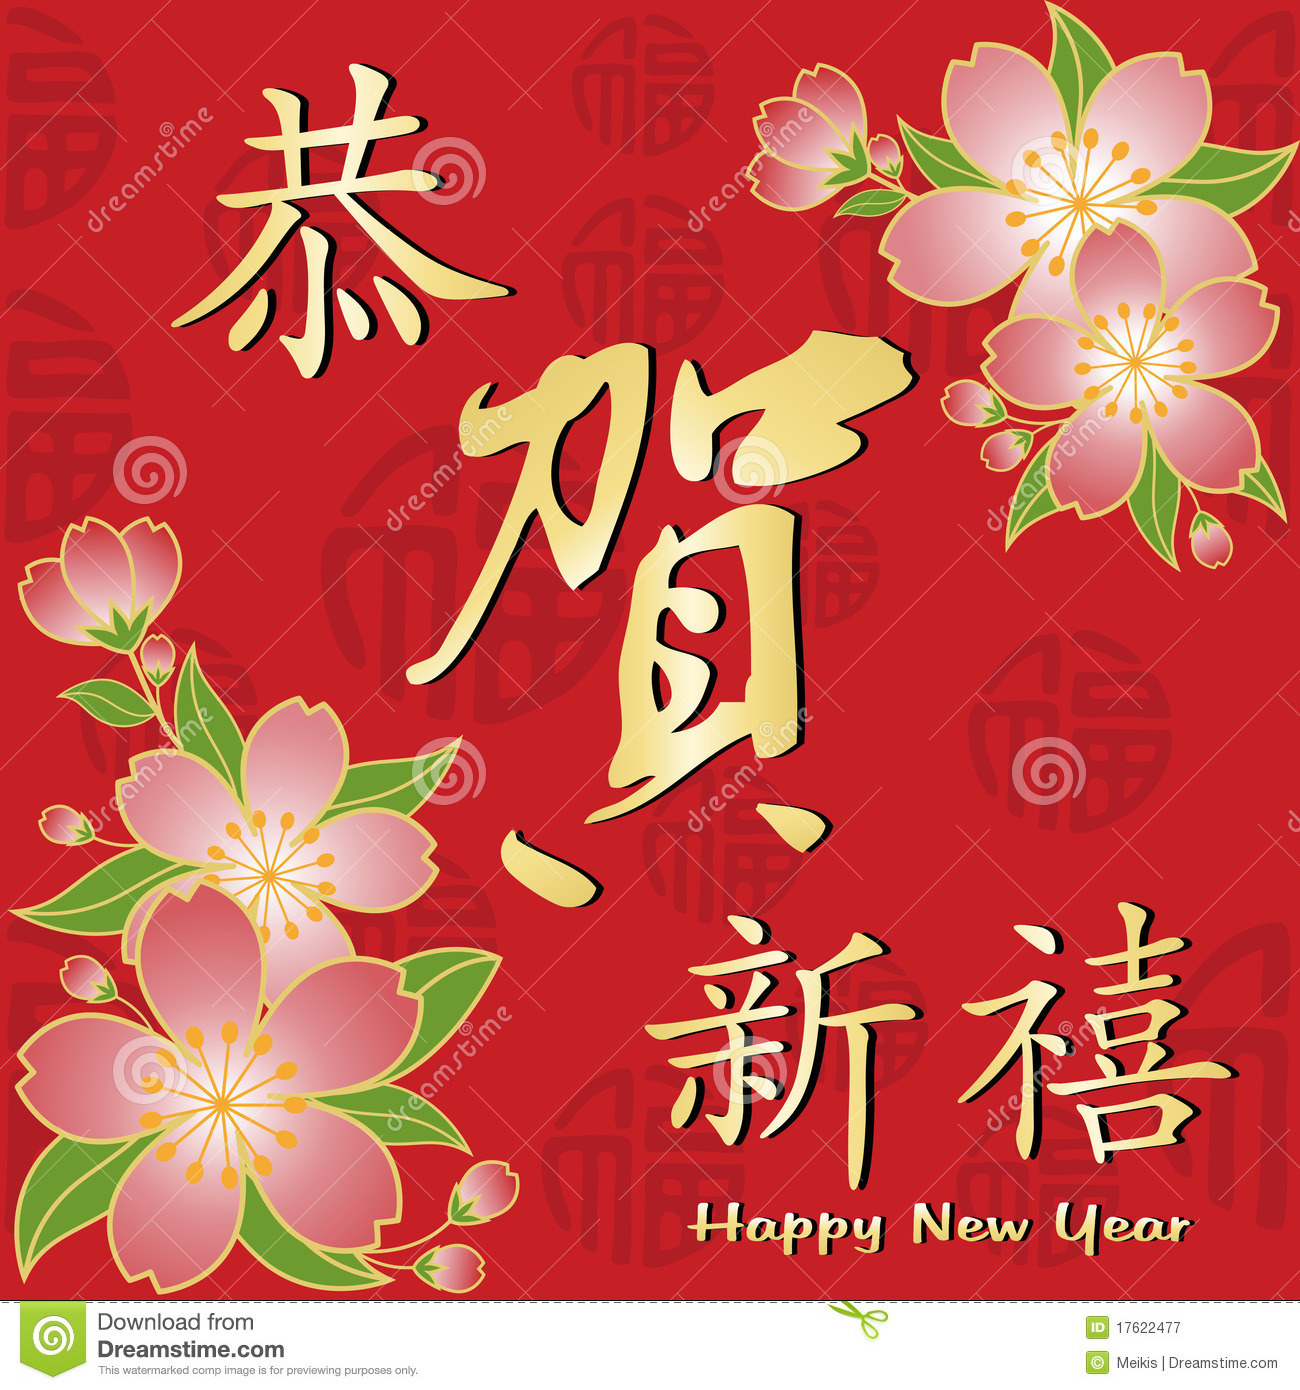 Chinese new year greeting card stock vector illustration of asia chinese new year greeting card royalty free stock photo m4hsunfo Choice Image